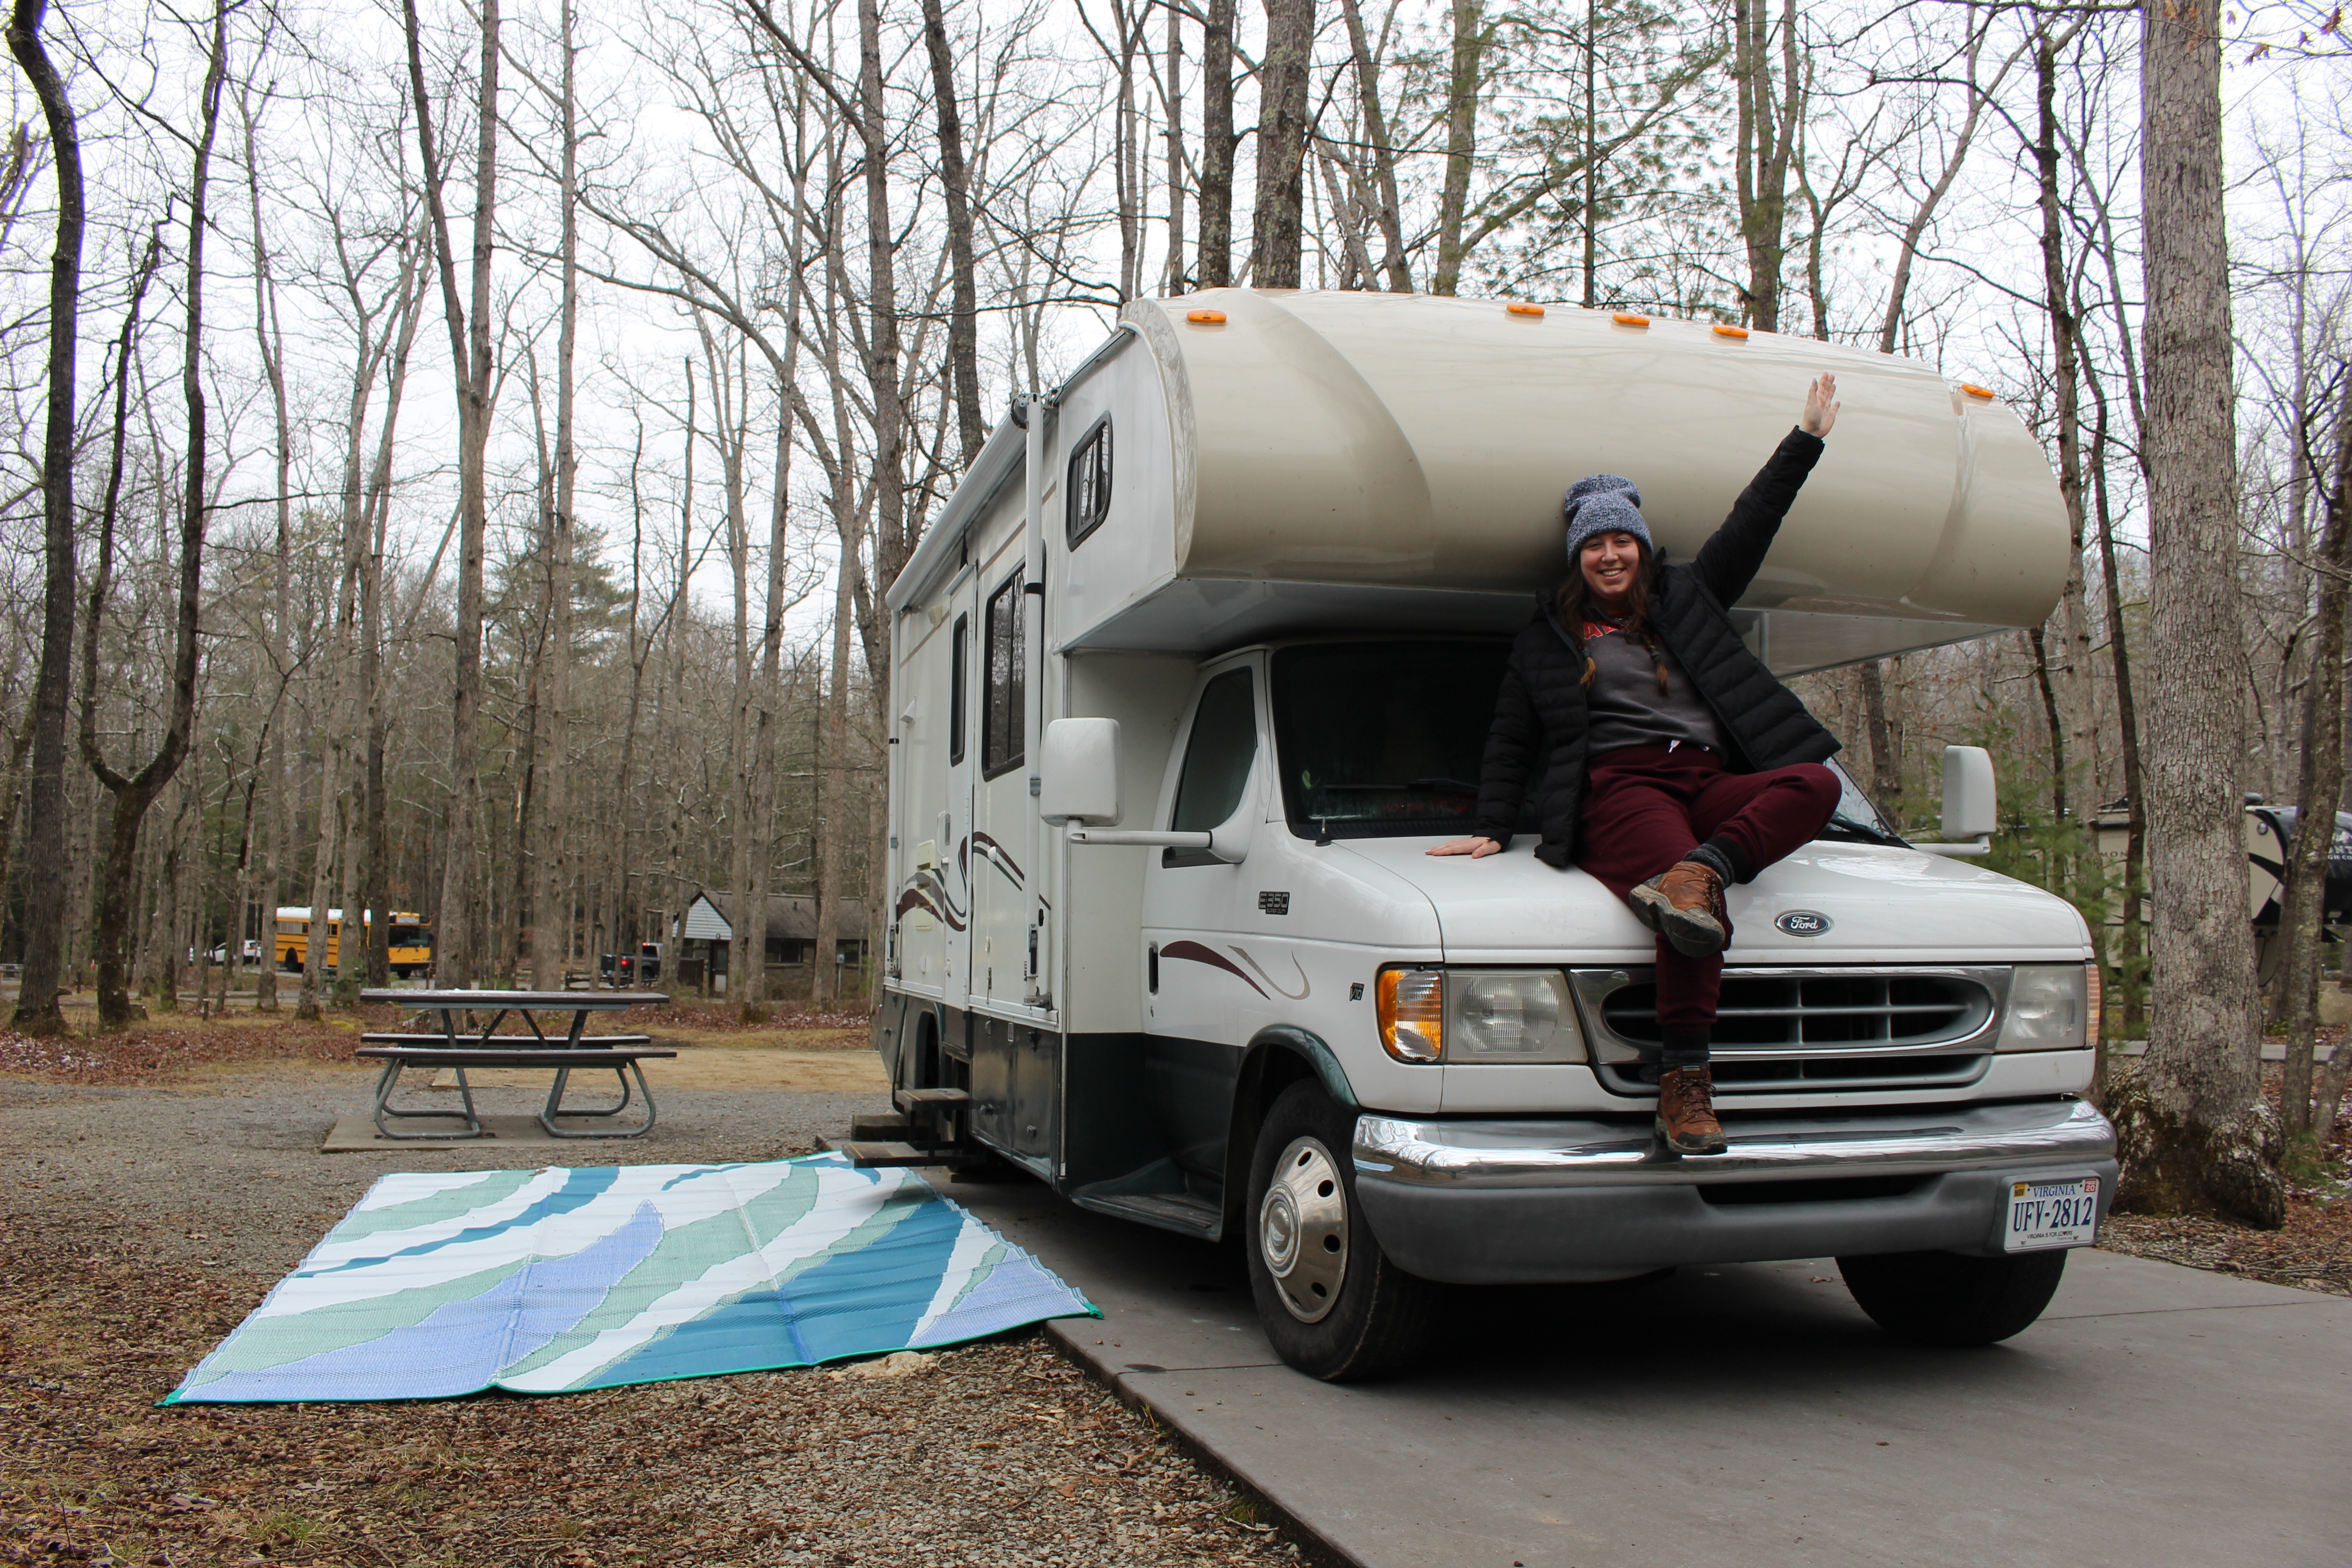 Freedom from rent with my RV